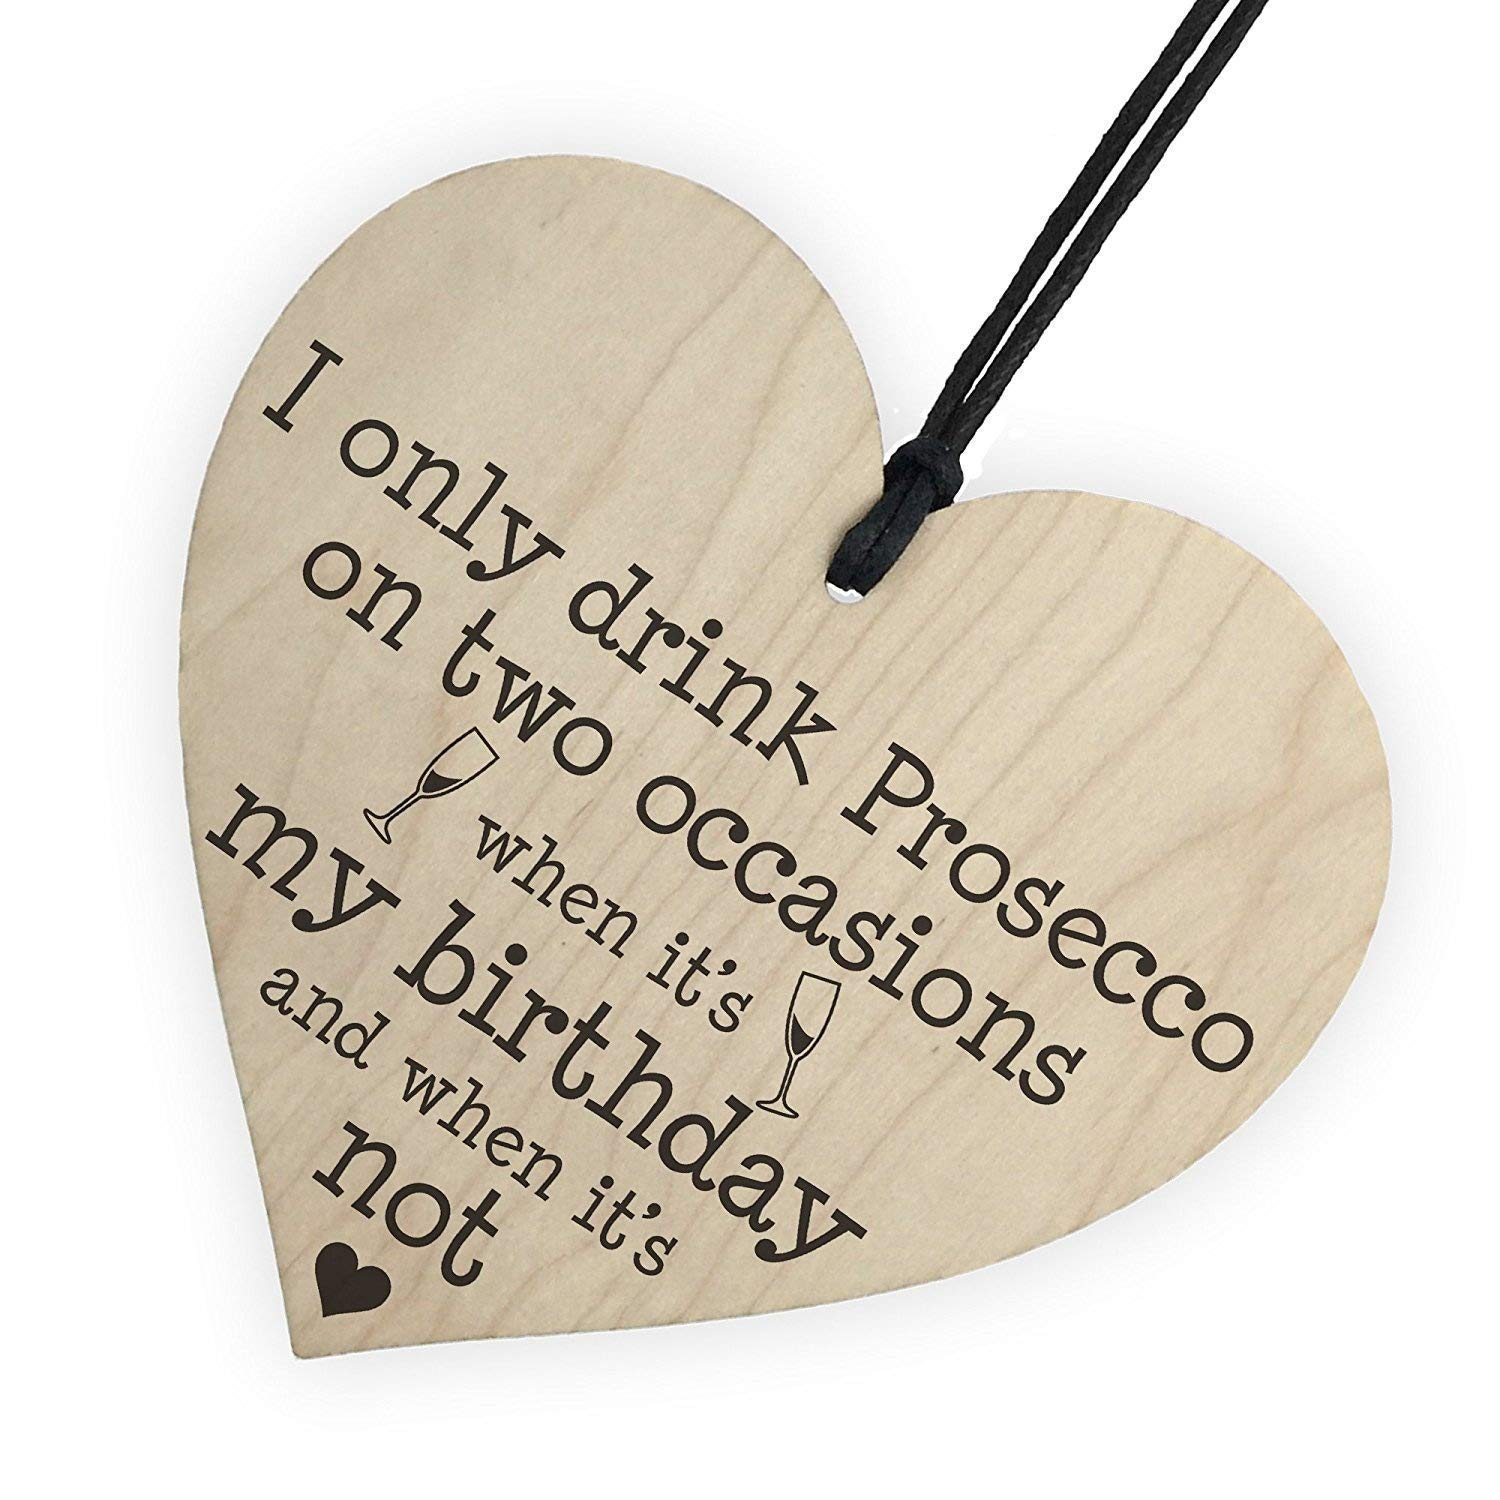 Red Ocean Drink Prosecco On Two Occasions Novelty Wooden Heart Plaque Alcohol Joke Sign RO-2579